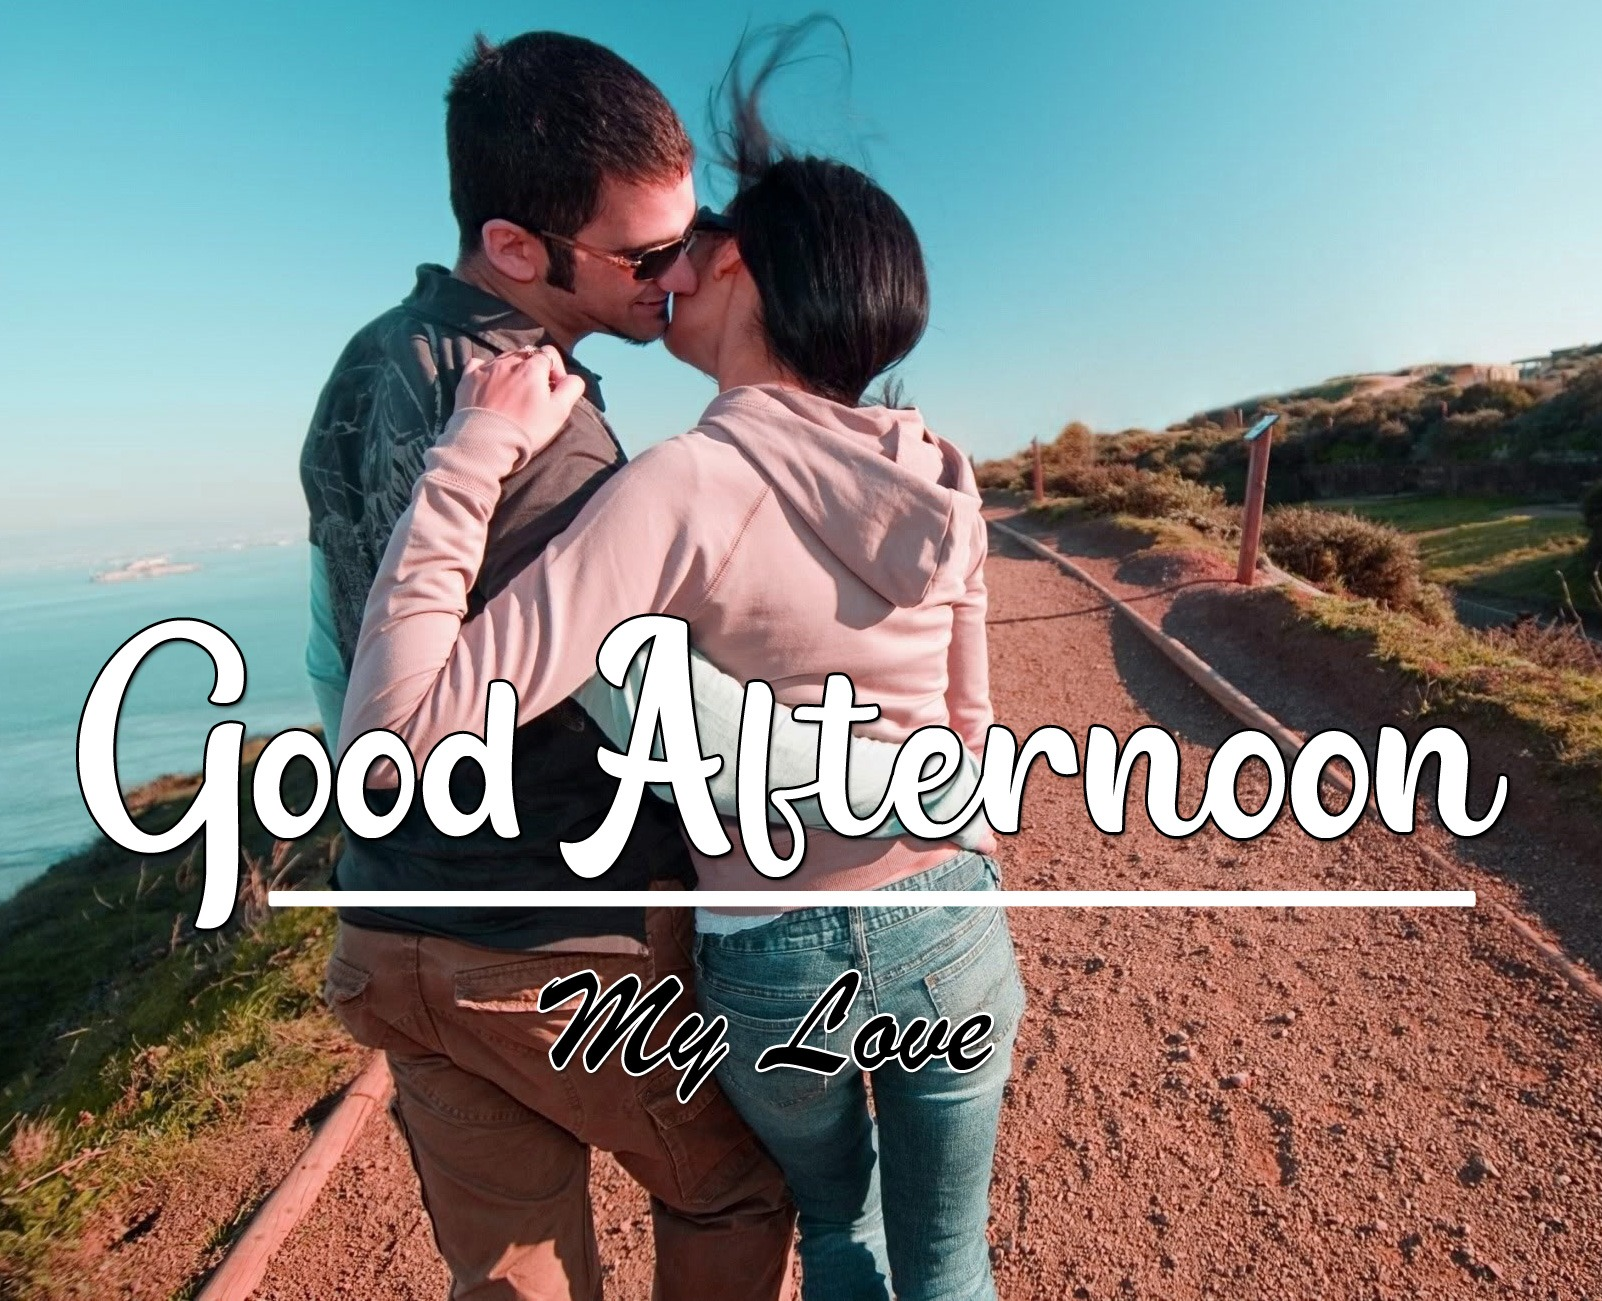 Good Afternoon Images 76 Whatsappimages Download and use 10,000+ romantic stock photos for free. good afternoon images 76 whatsappimages